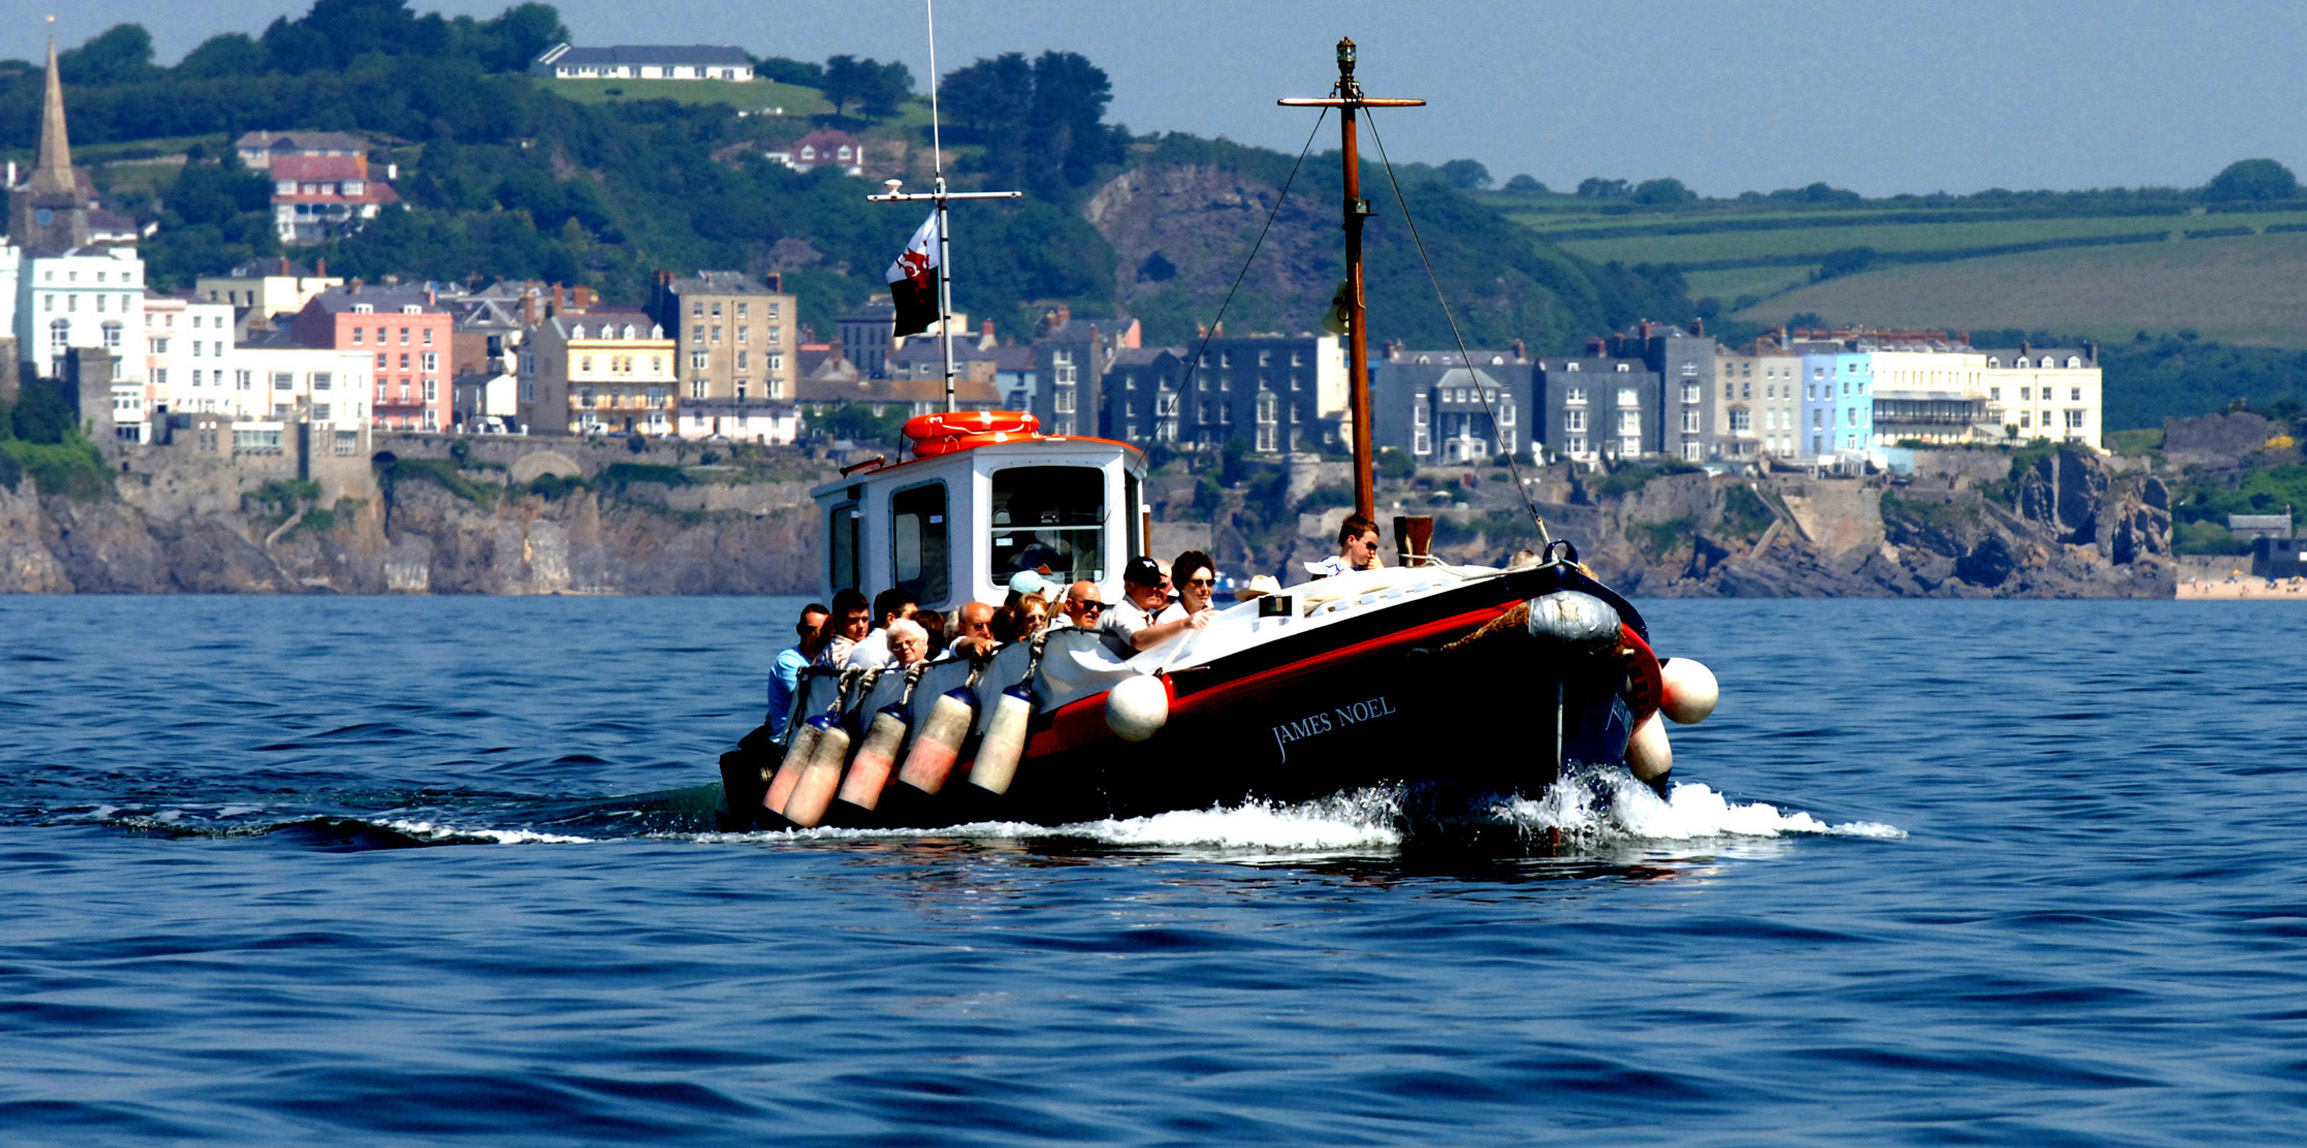 Caldey boat and Tenby copy.jpg